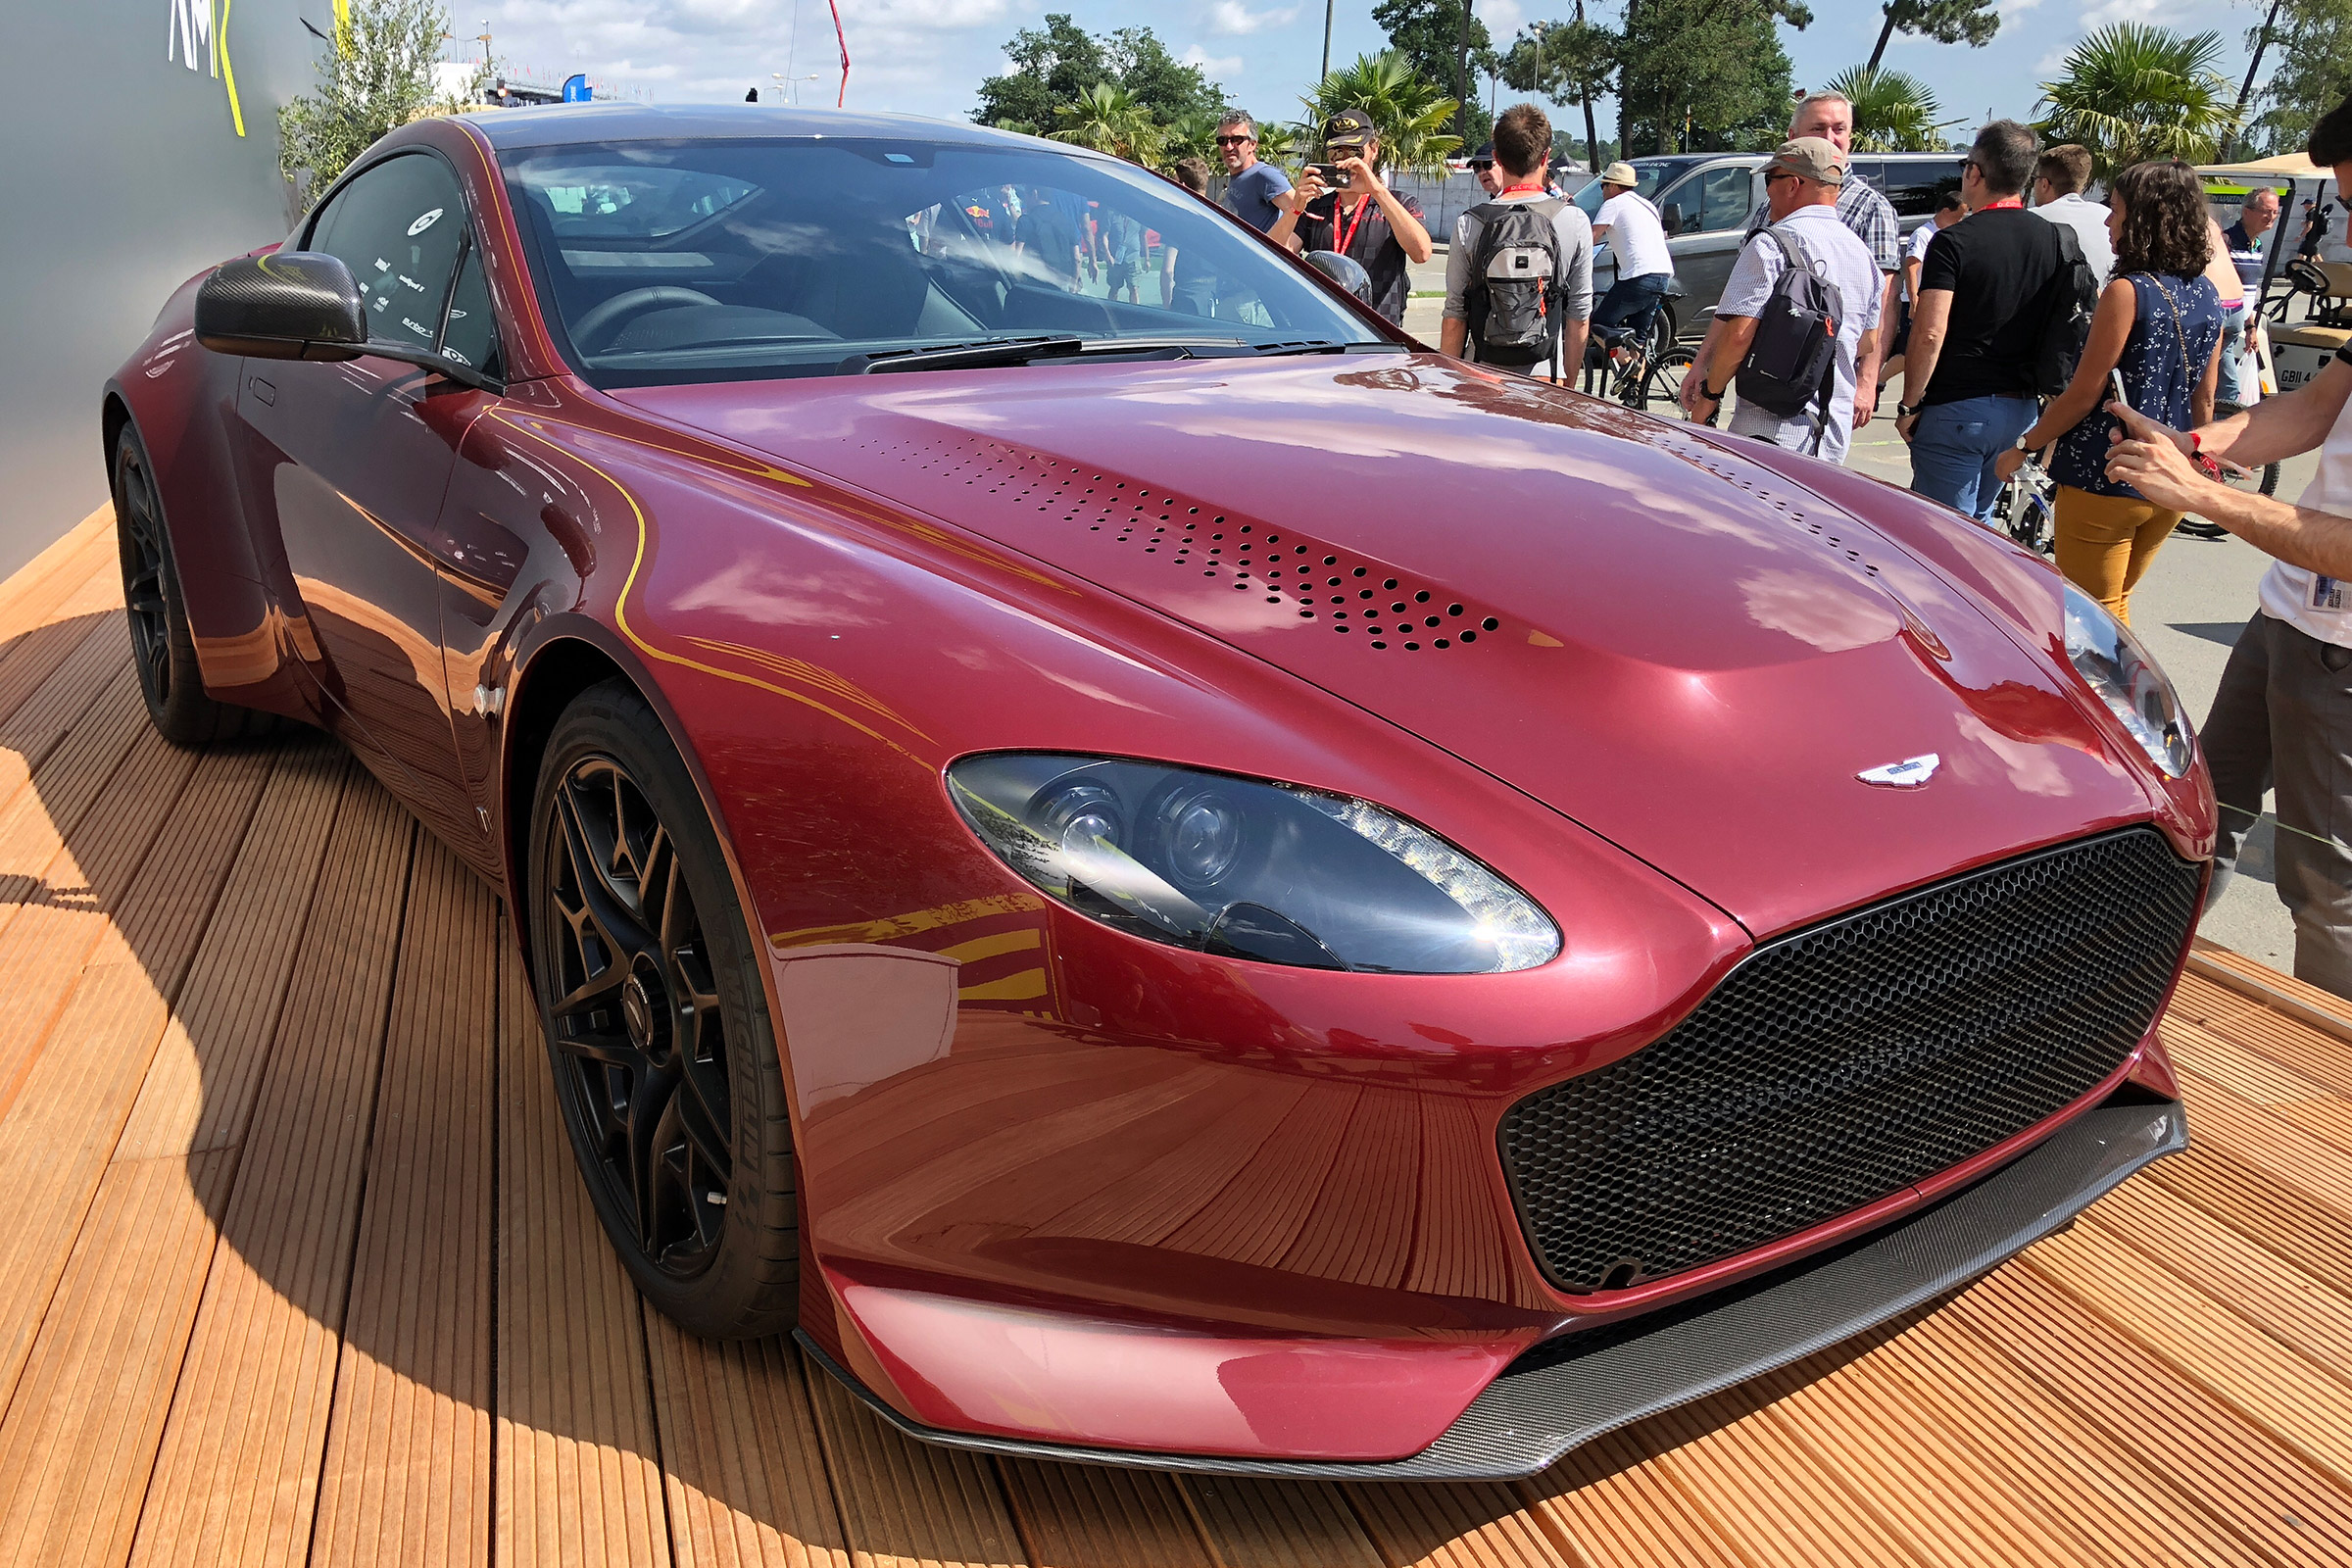 Limited Aston Martin V12 Vantage V600 Revealed At Le Mans Auto Express